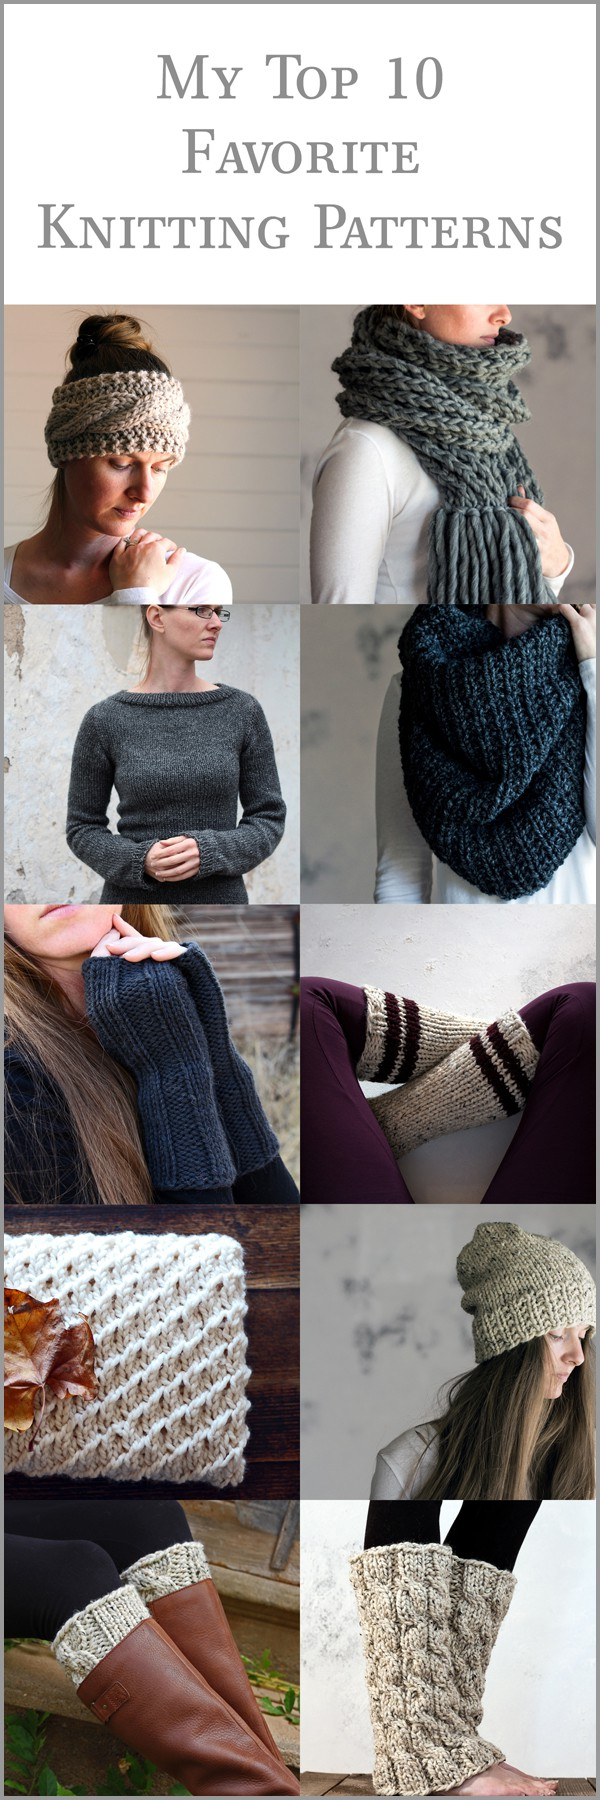 Top 10 Favorite Knitting Patterns by Brome Fields